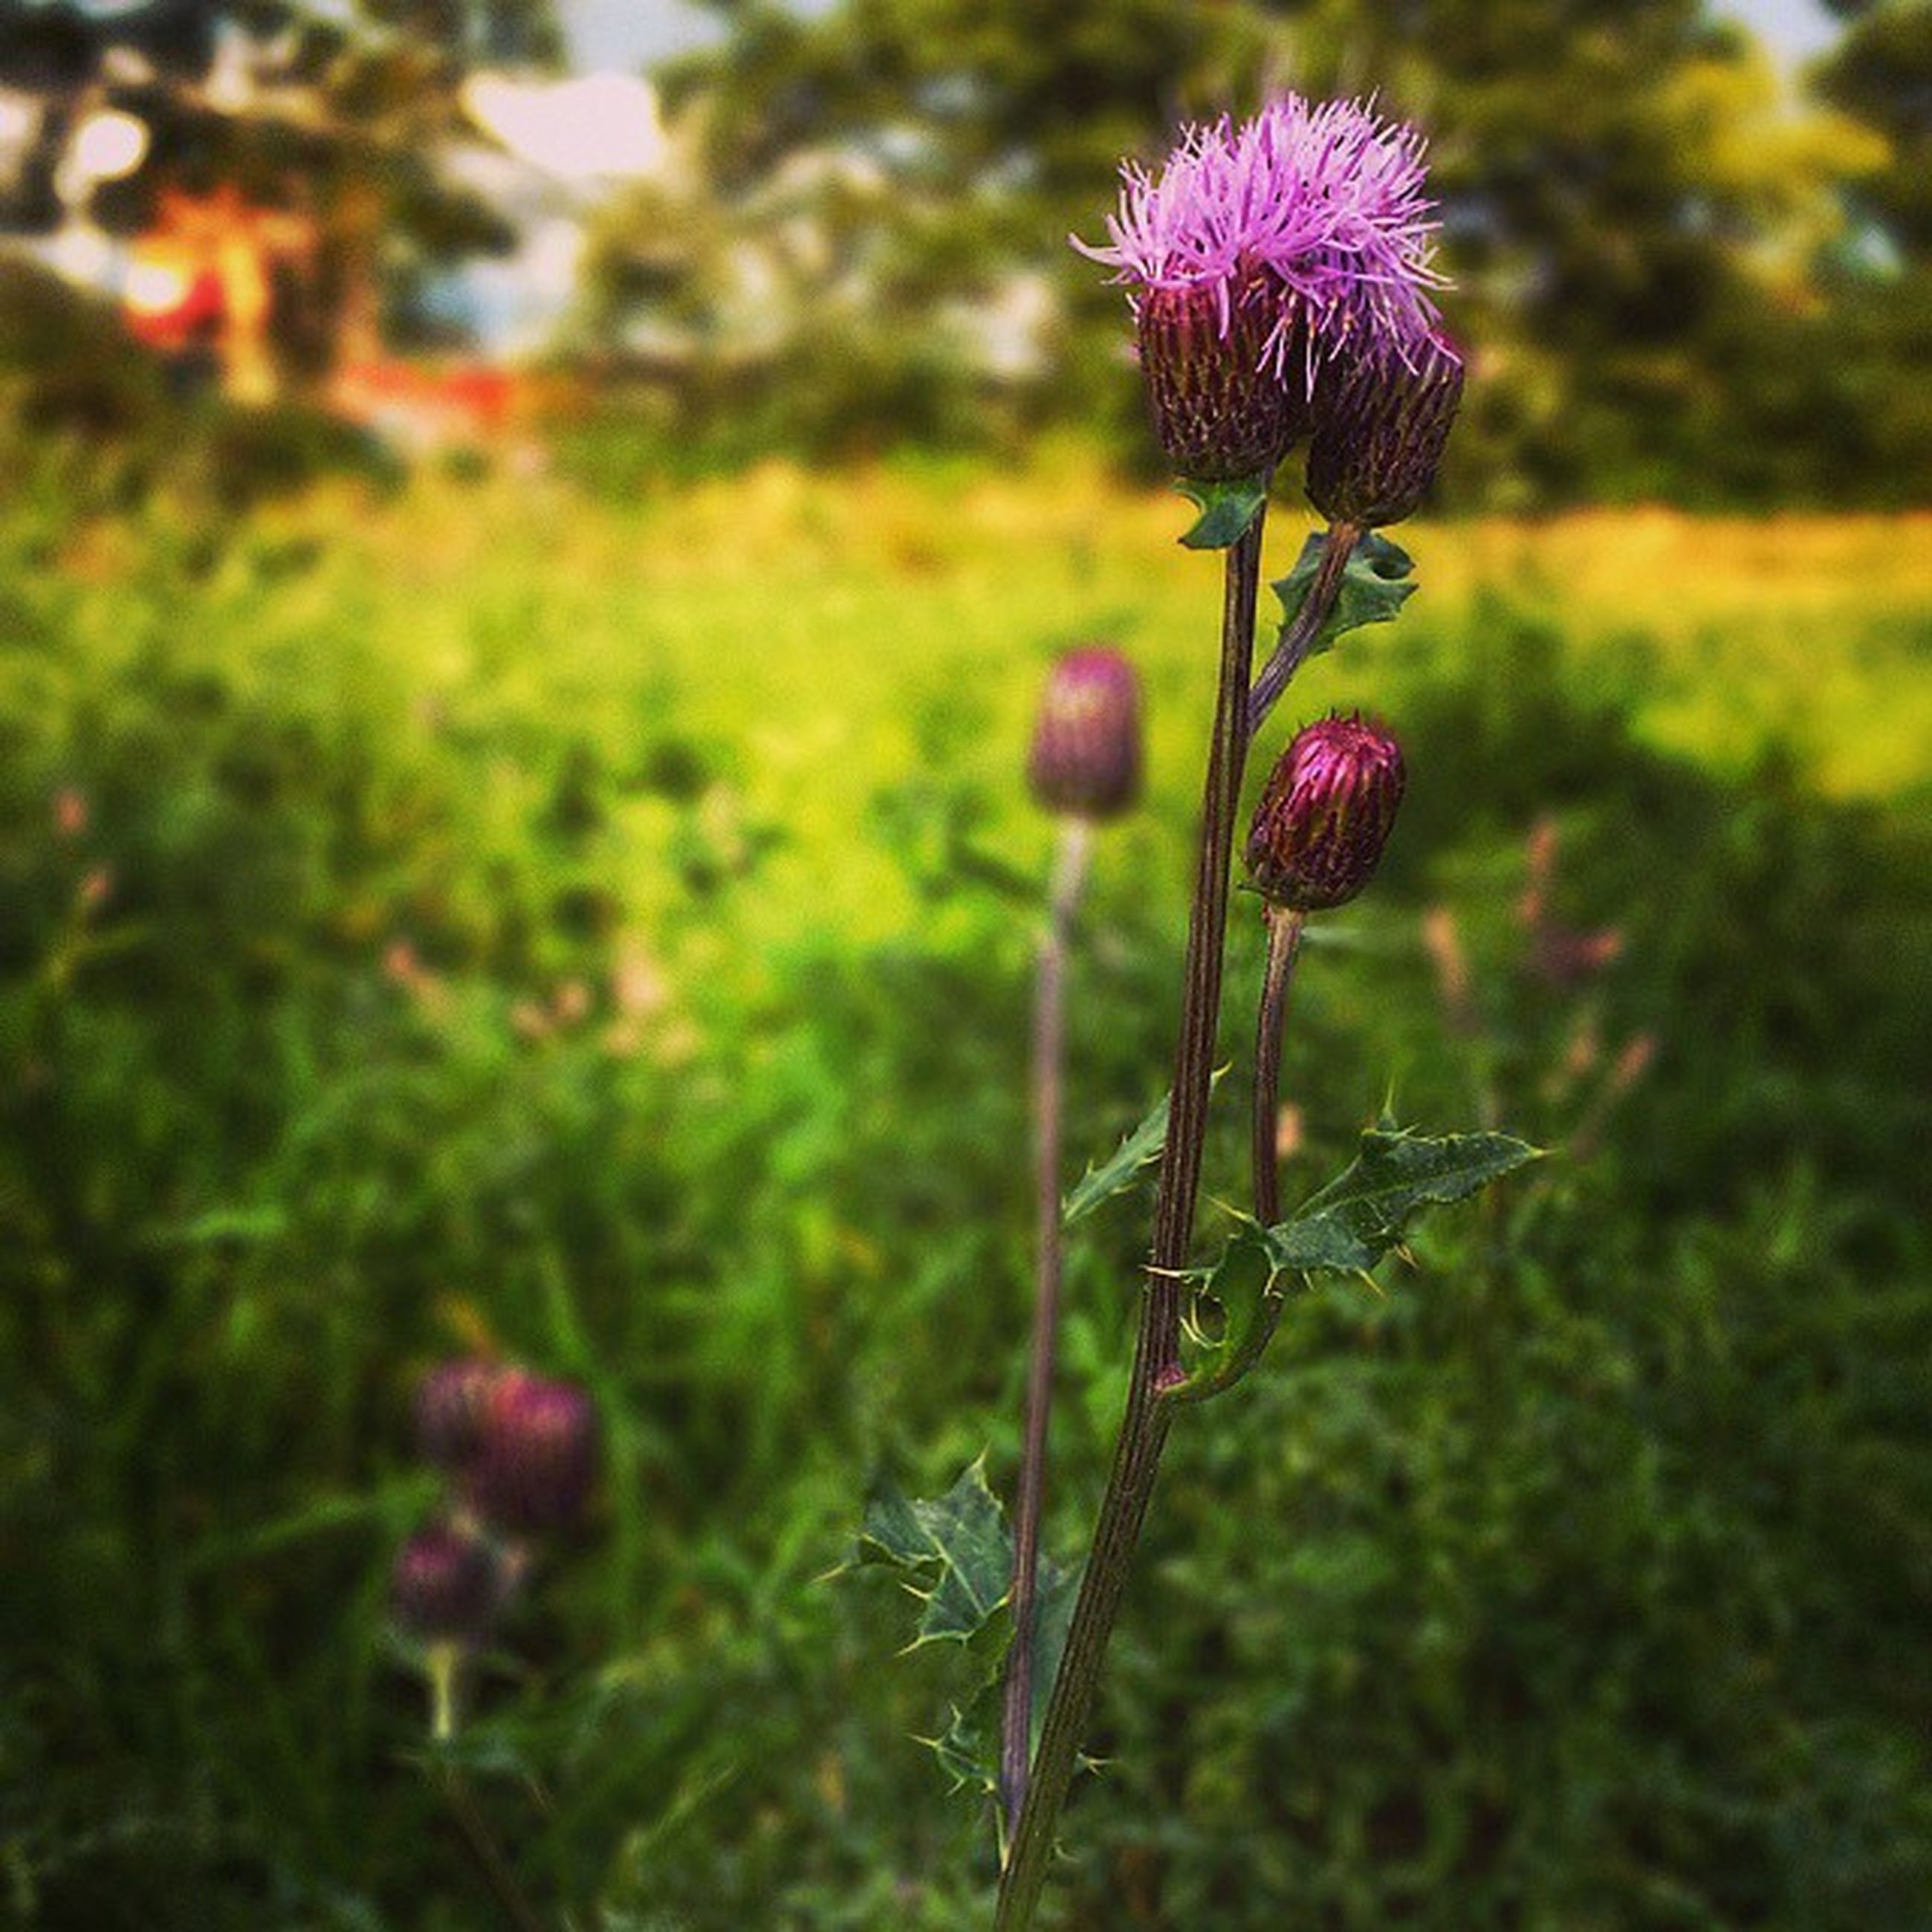 flower, freshness, growth, fragility, beauty in nature, focus on foreground, plant, stem, nature, close-up, field, petal, blooming, pink color, flower head, bud, in bloom, selective focus, wildflower, day